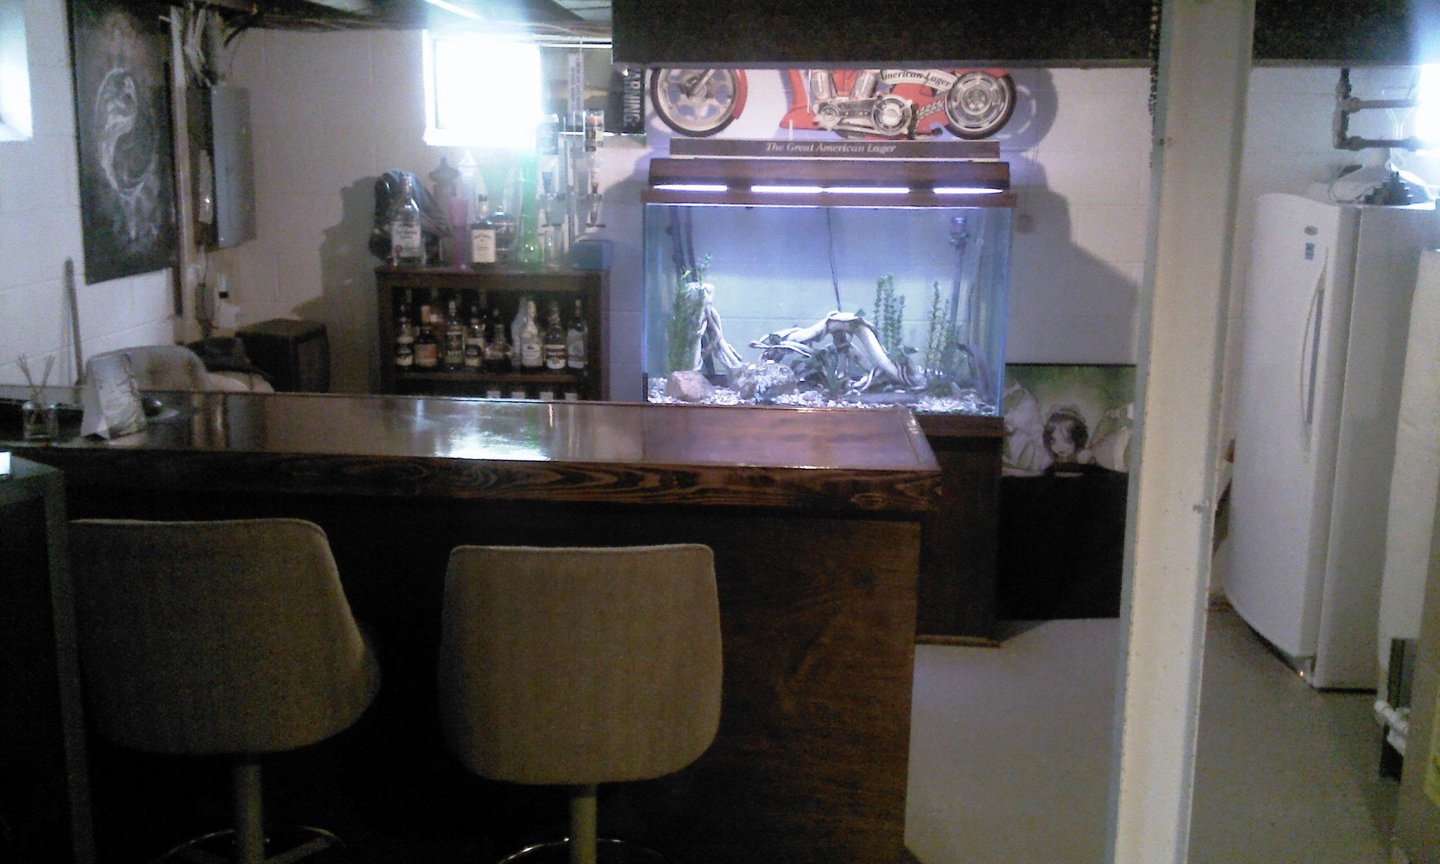 fish tank picture - the home of my 150 gallon - basement bar. as you see this picture, immediately behind you is the pool table (50s vintage, complete with stained glass light), darts, and TV lounge